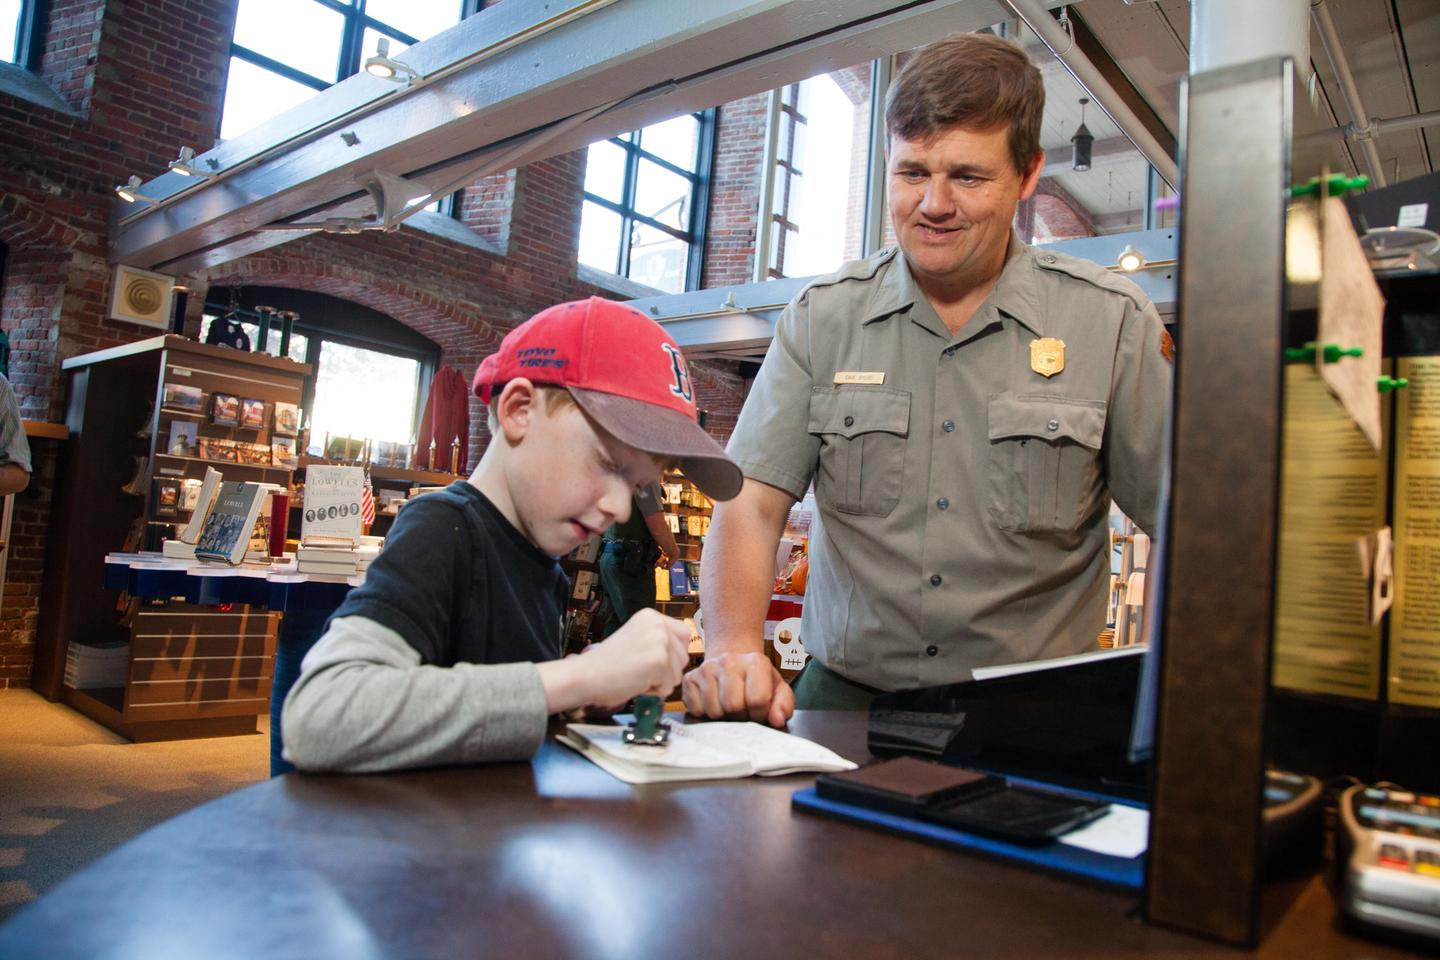 A ranger helps a child stamp their passport book